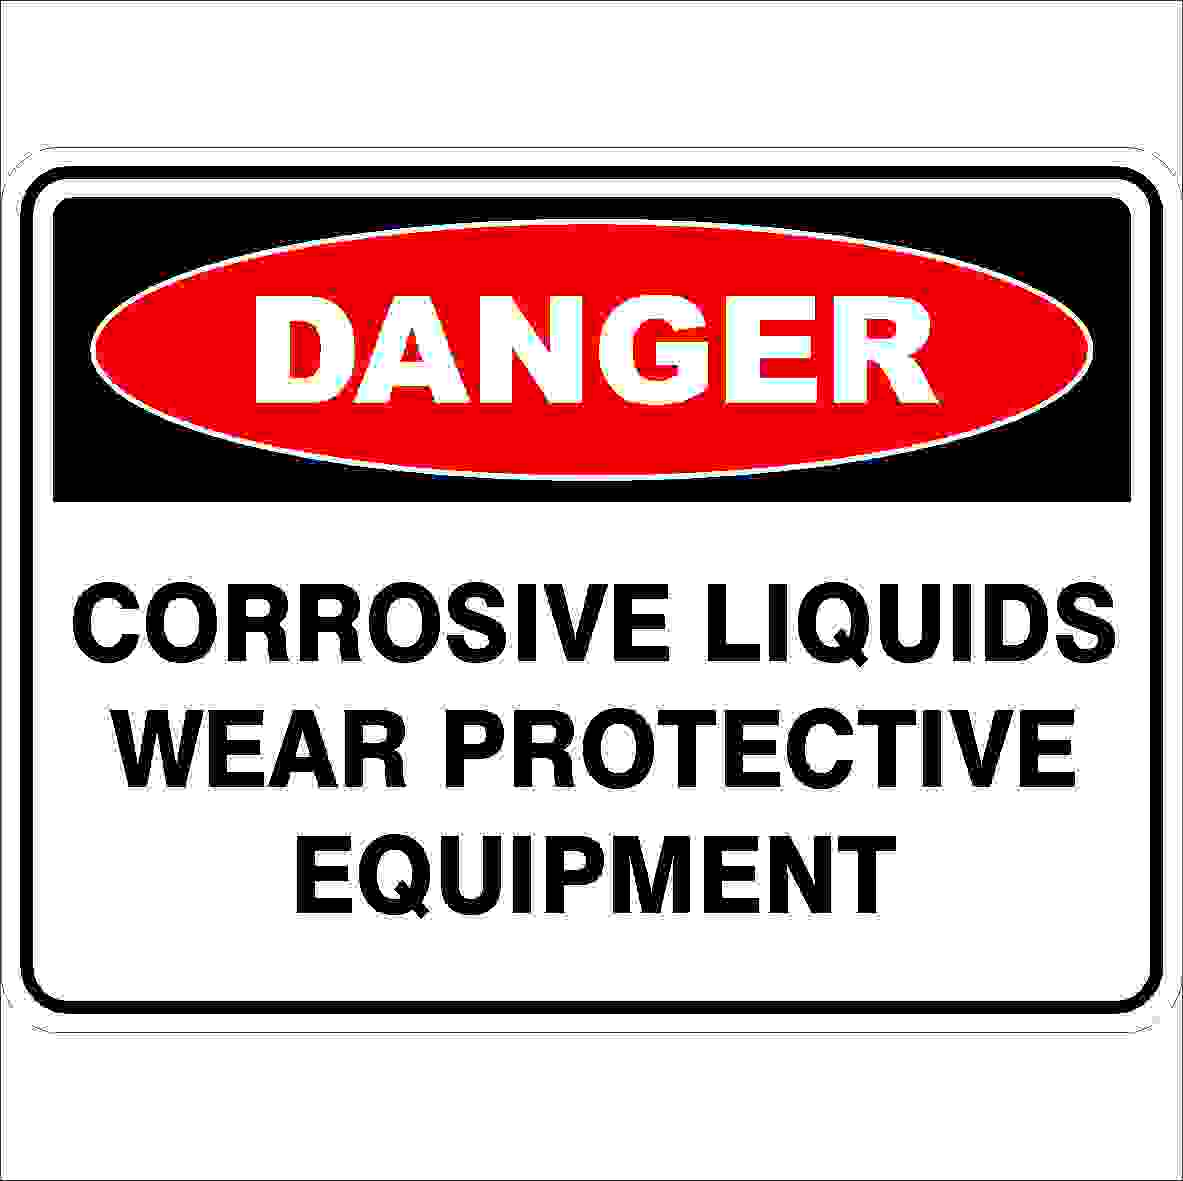 Danger Signs CORROSIVE LIQUIDS WEAR PROTECTIVE EQUIPMENT